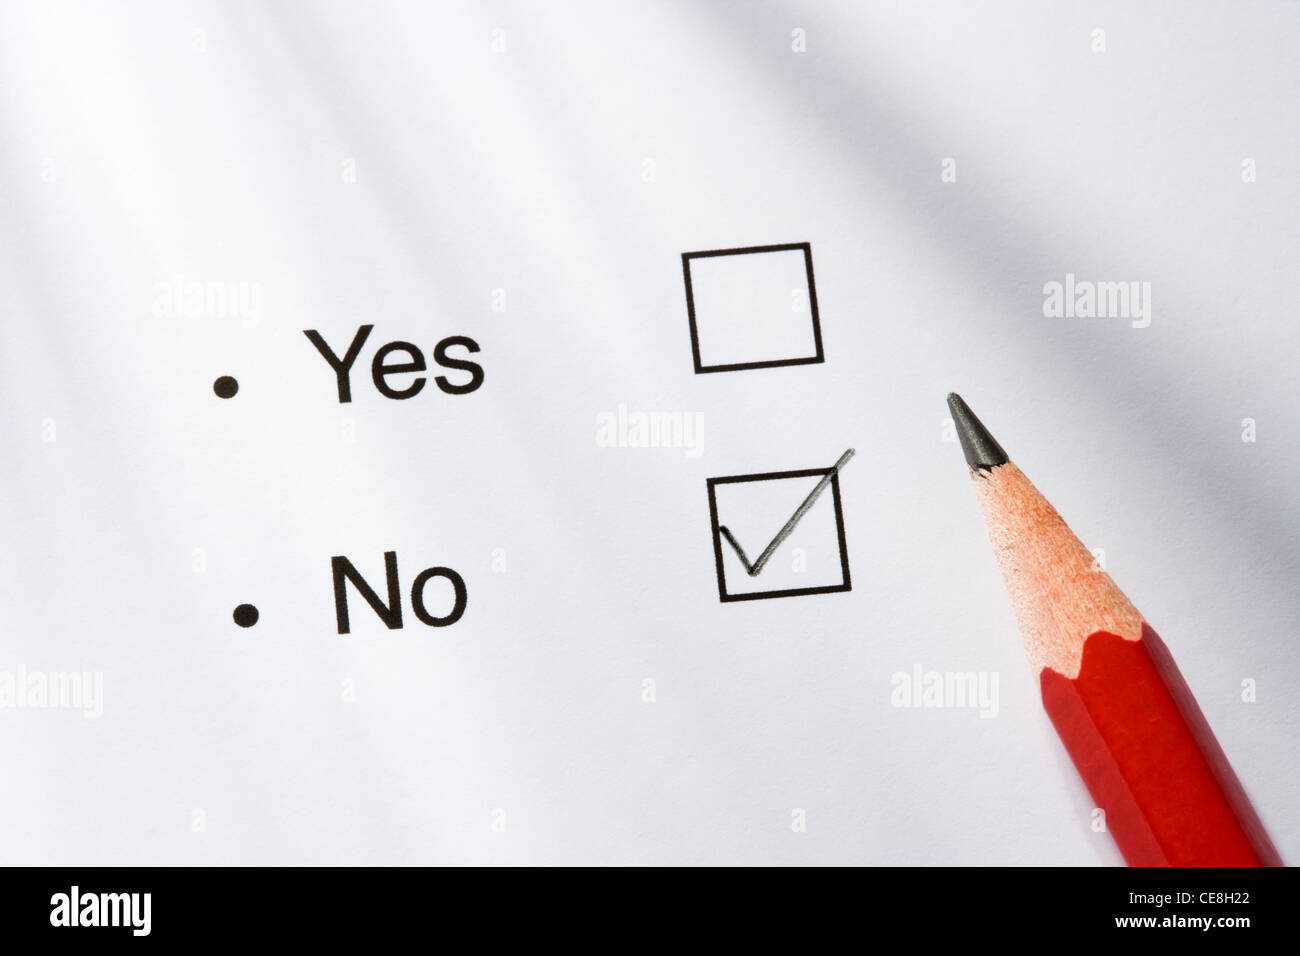 Yes/no option and pencil. No ticked - Stock Image